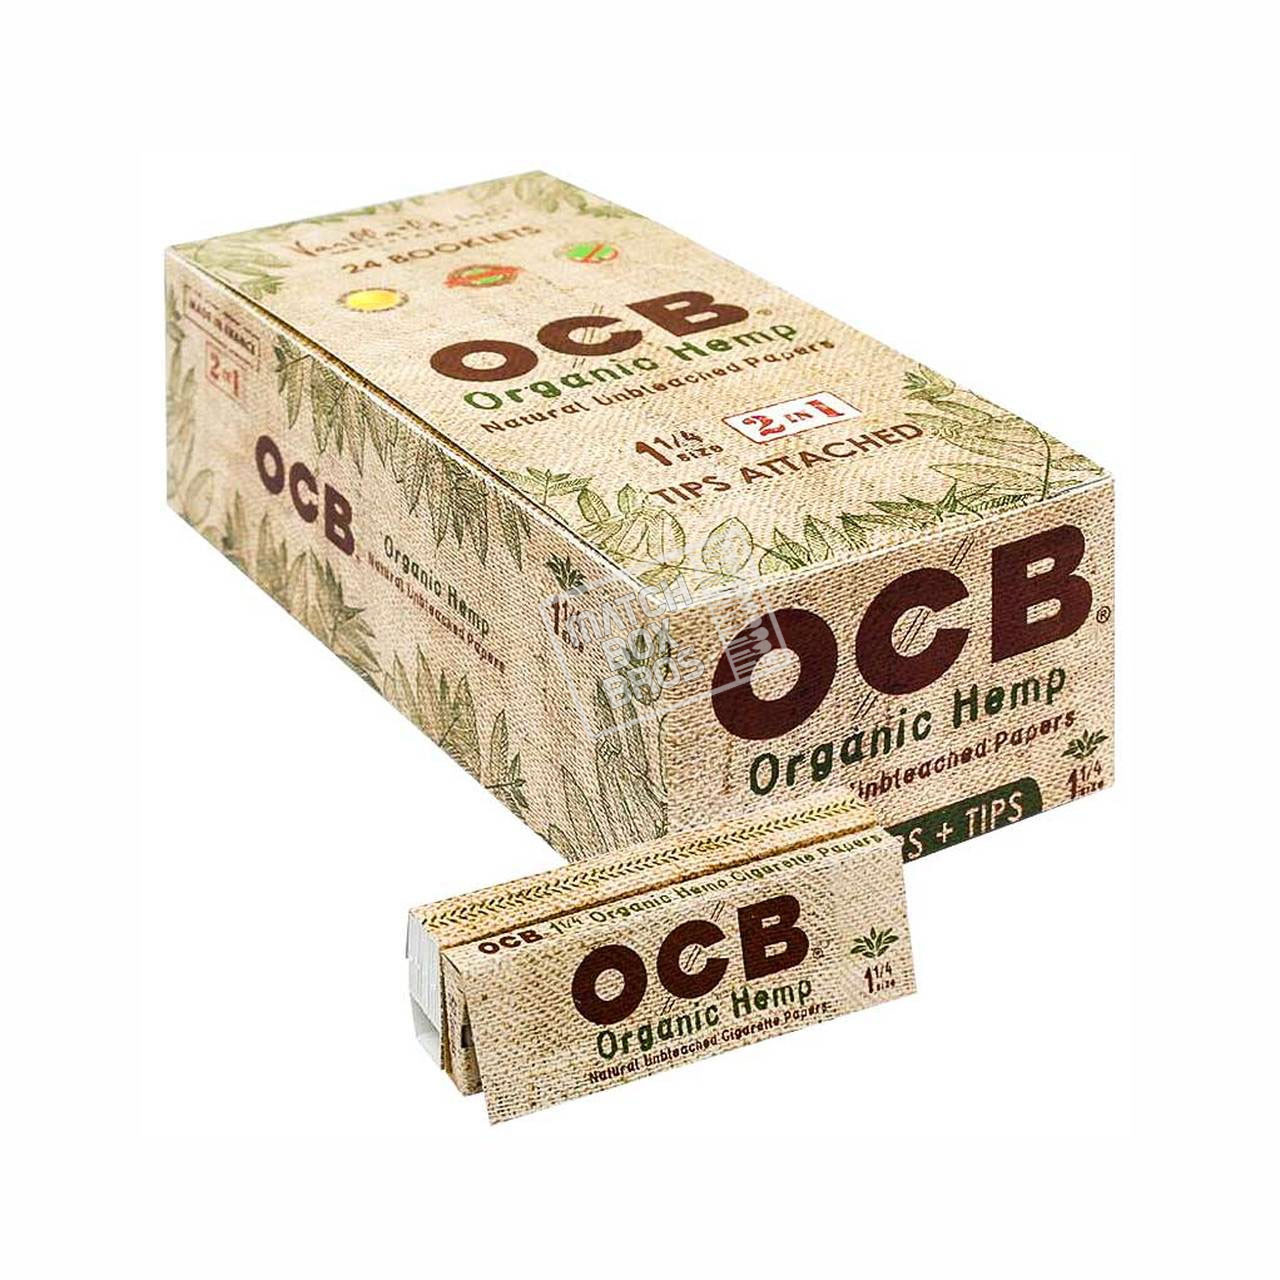 OCB Organic Hemp 1¼ Paper + Tips